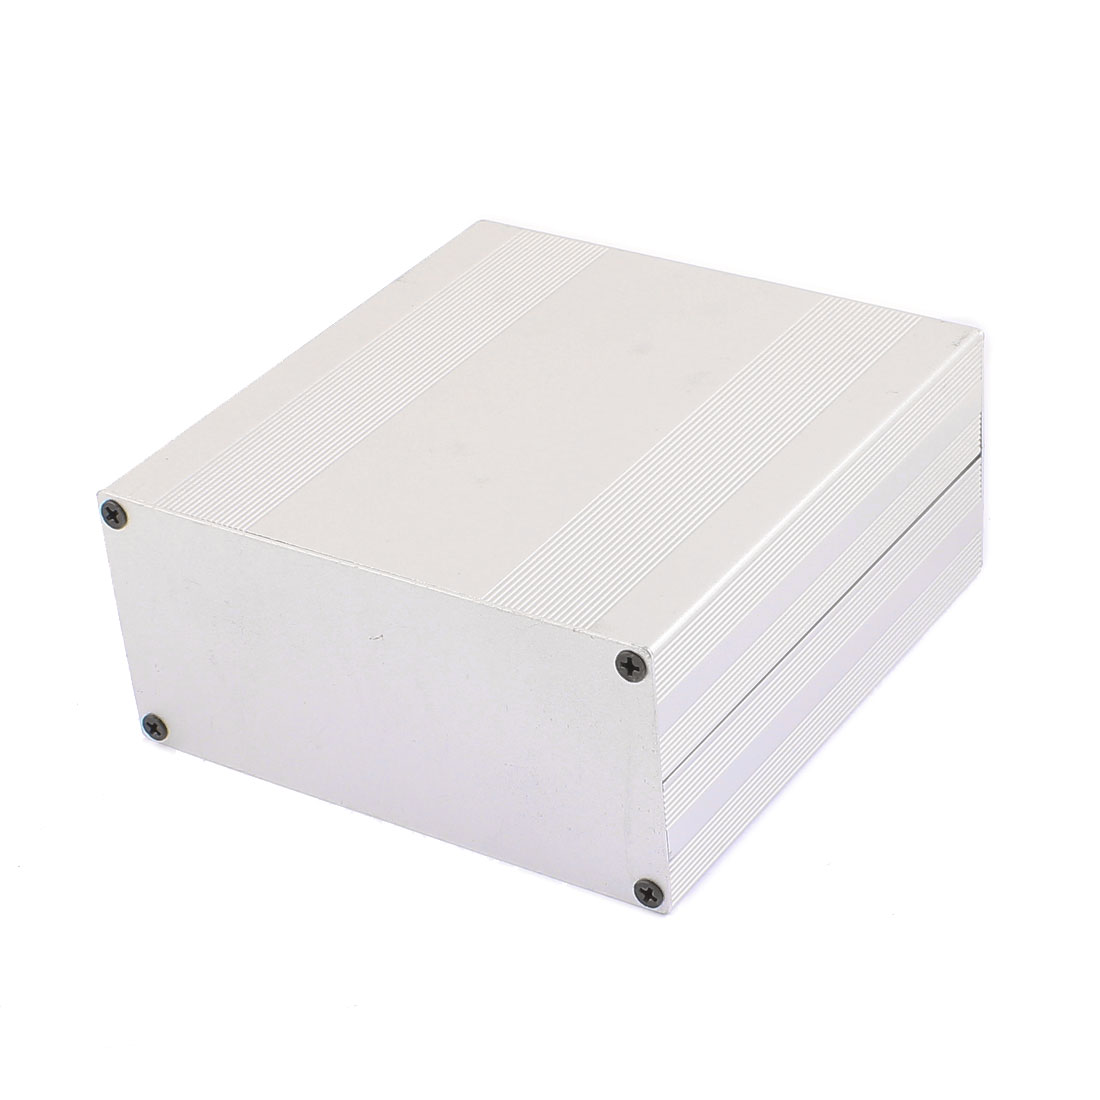 153 x 145 x 68mm Multi-purpose Electronic Extruded Aluminum Enclosure Silver Tone